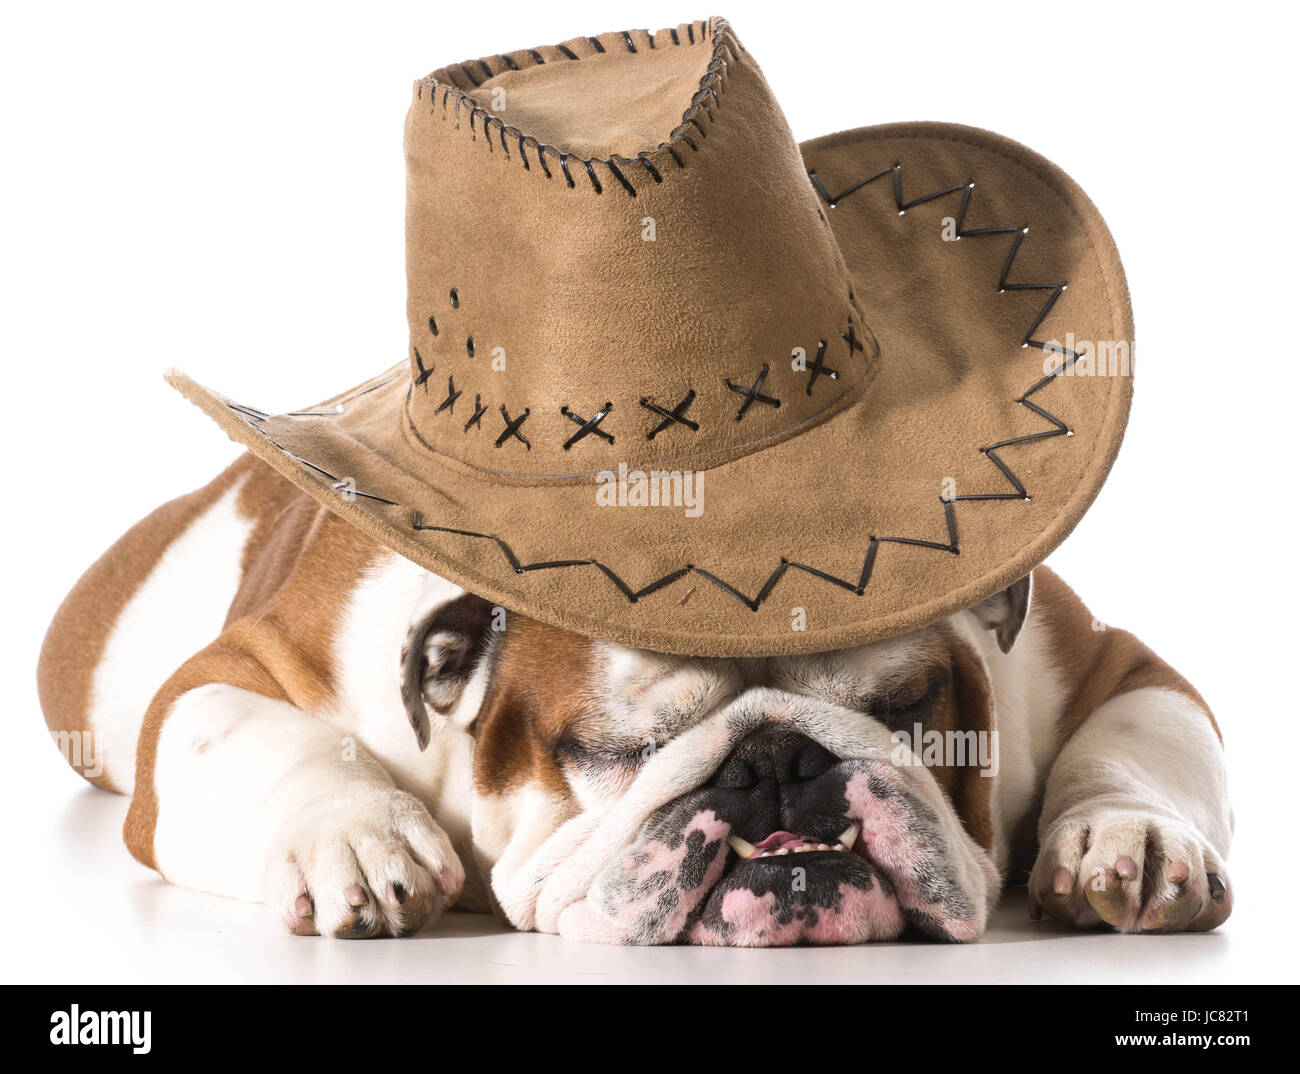 Dog Wearing Cowboy Hat On White Background English Bulldog Stock